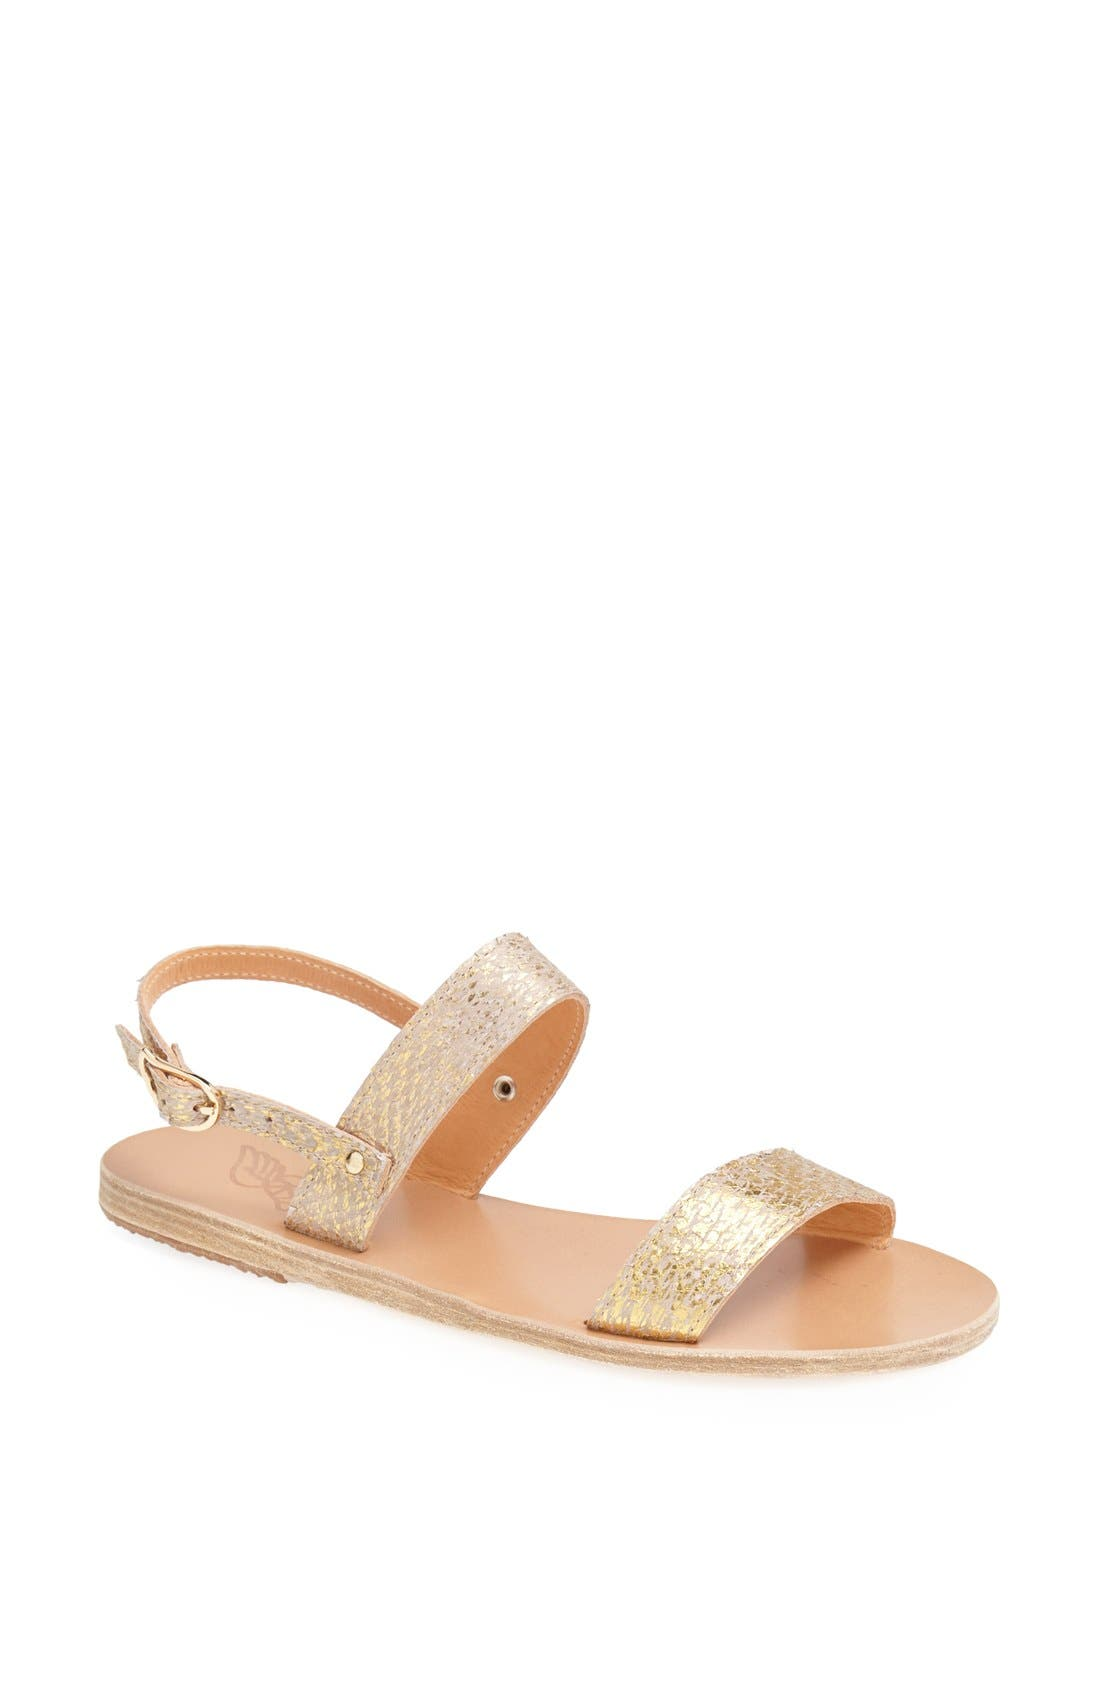 Main Image - Ancient Greek Sandals 'Clio' Metallic Salmon Skin Sandal